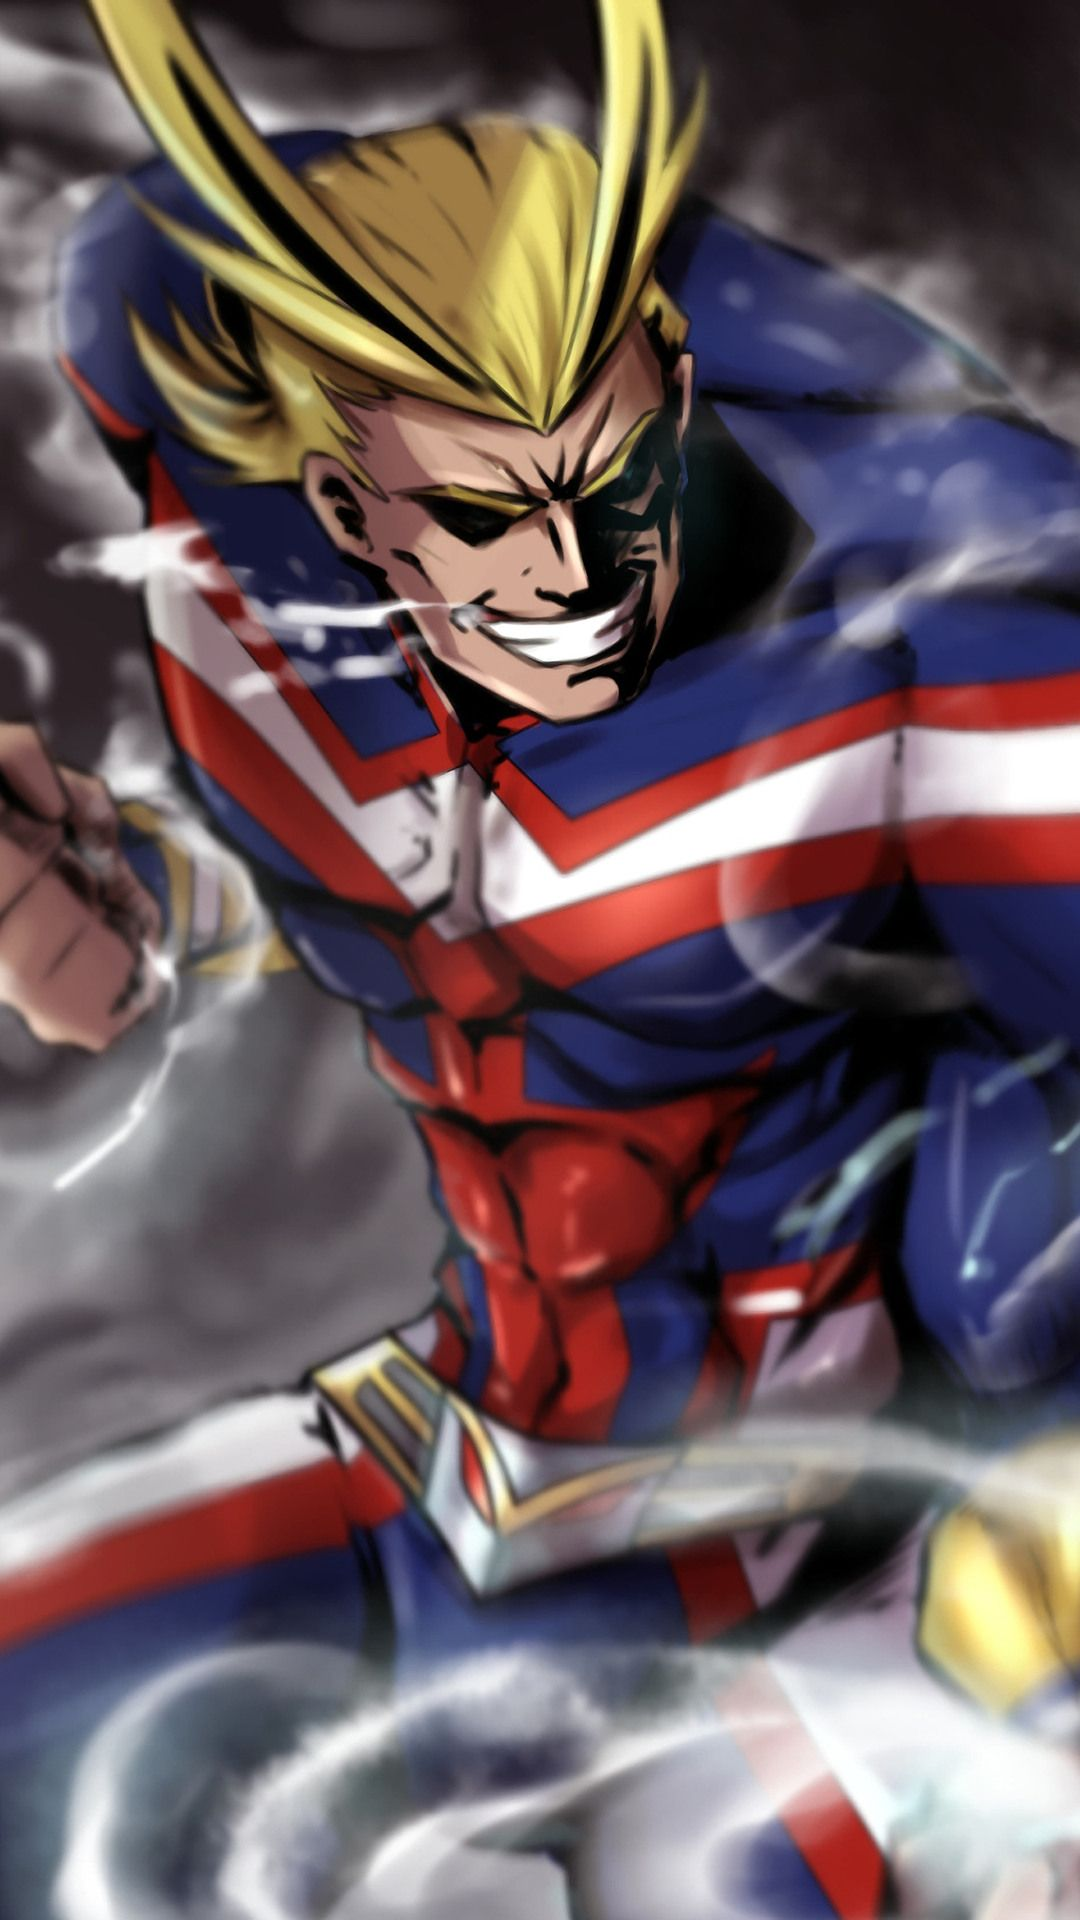 All Might 4k Phone Desktop Hd Wallpapers 2020 My Hero Academia